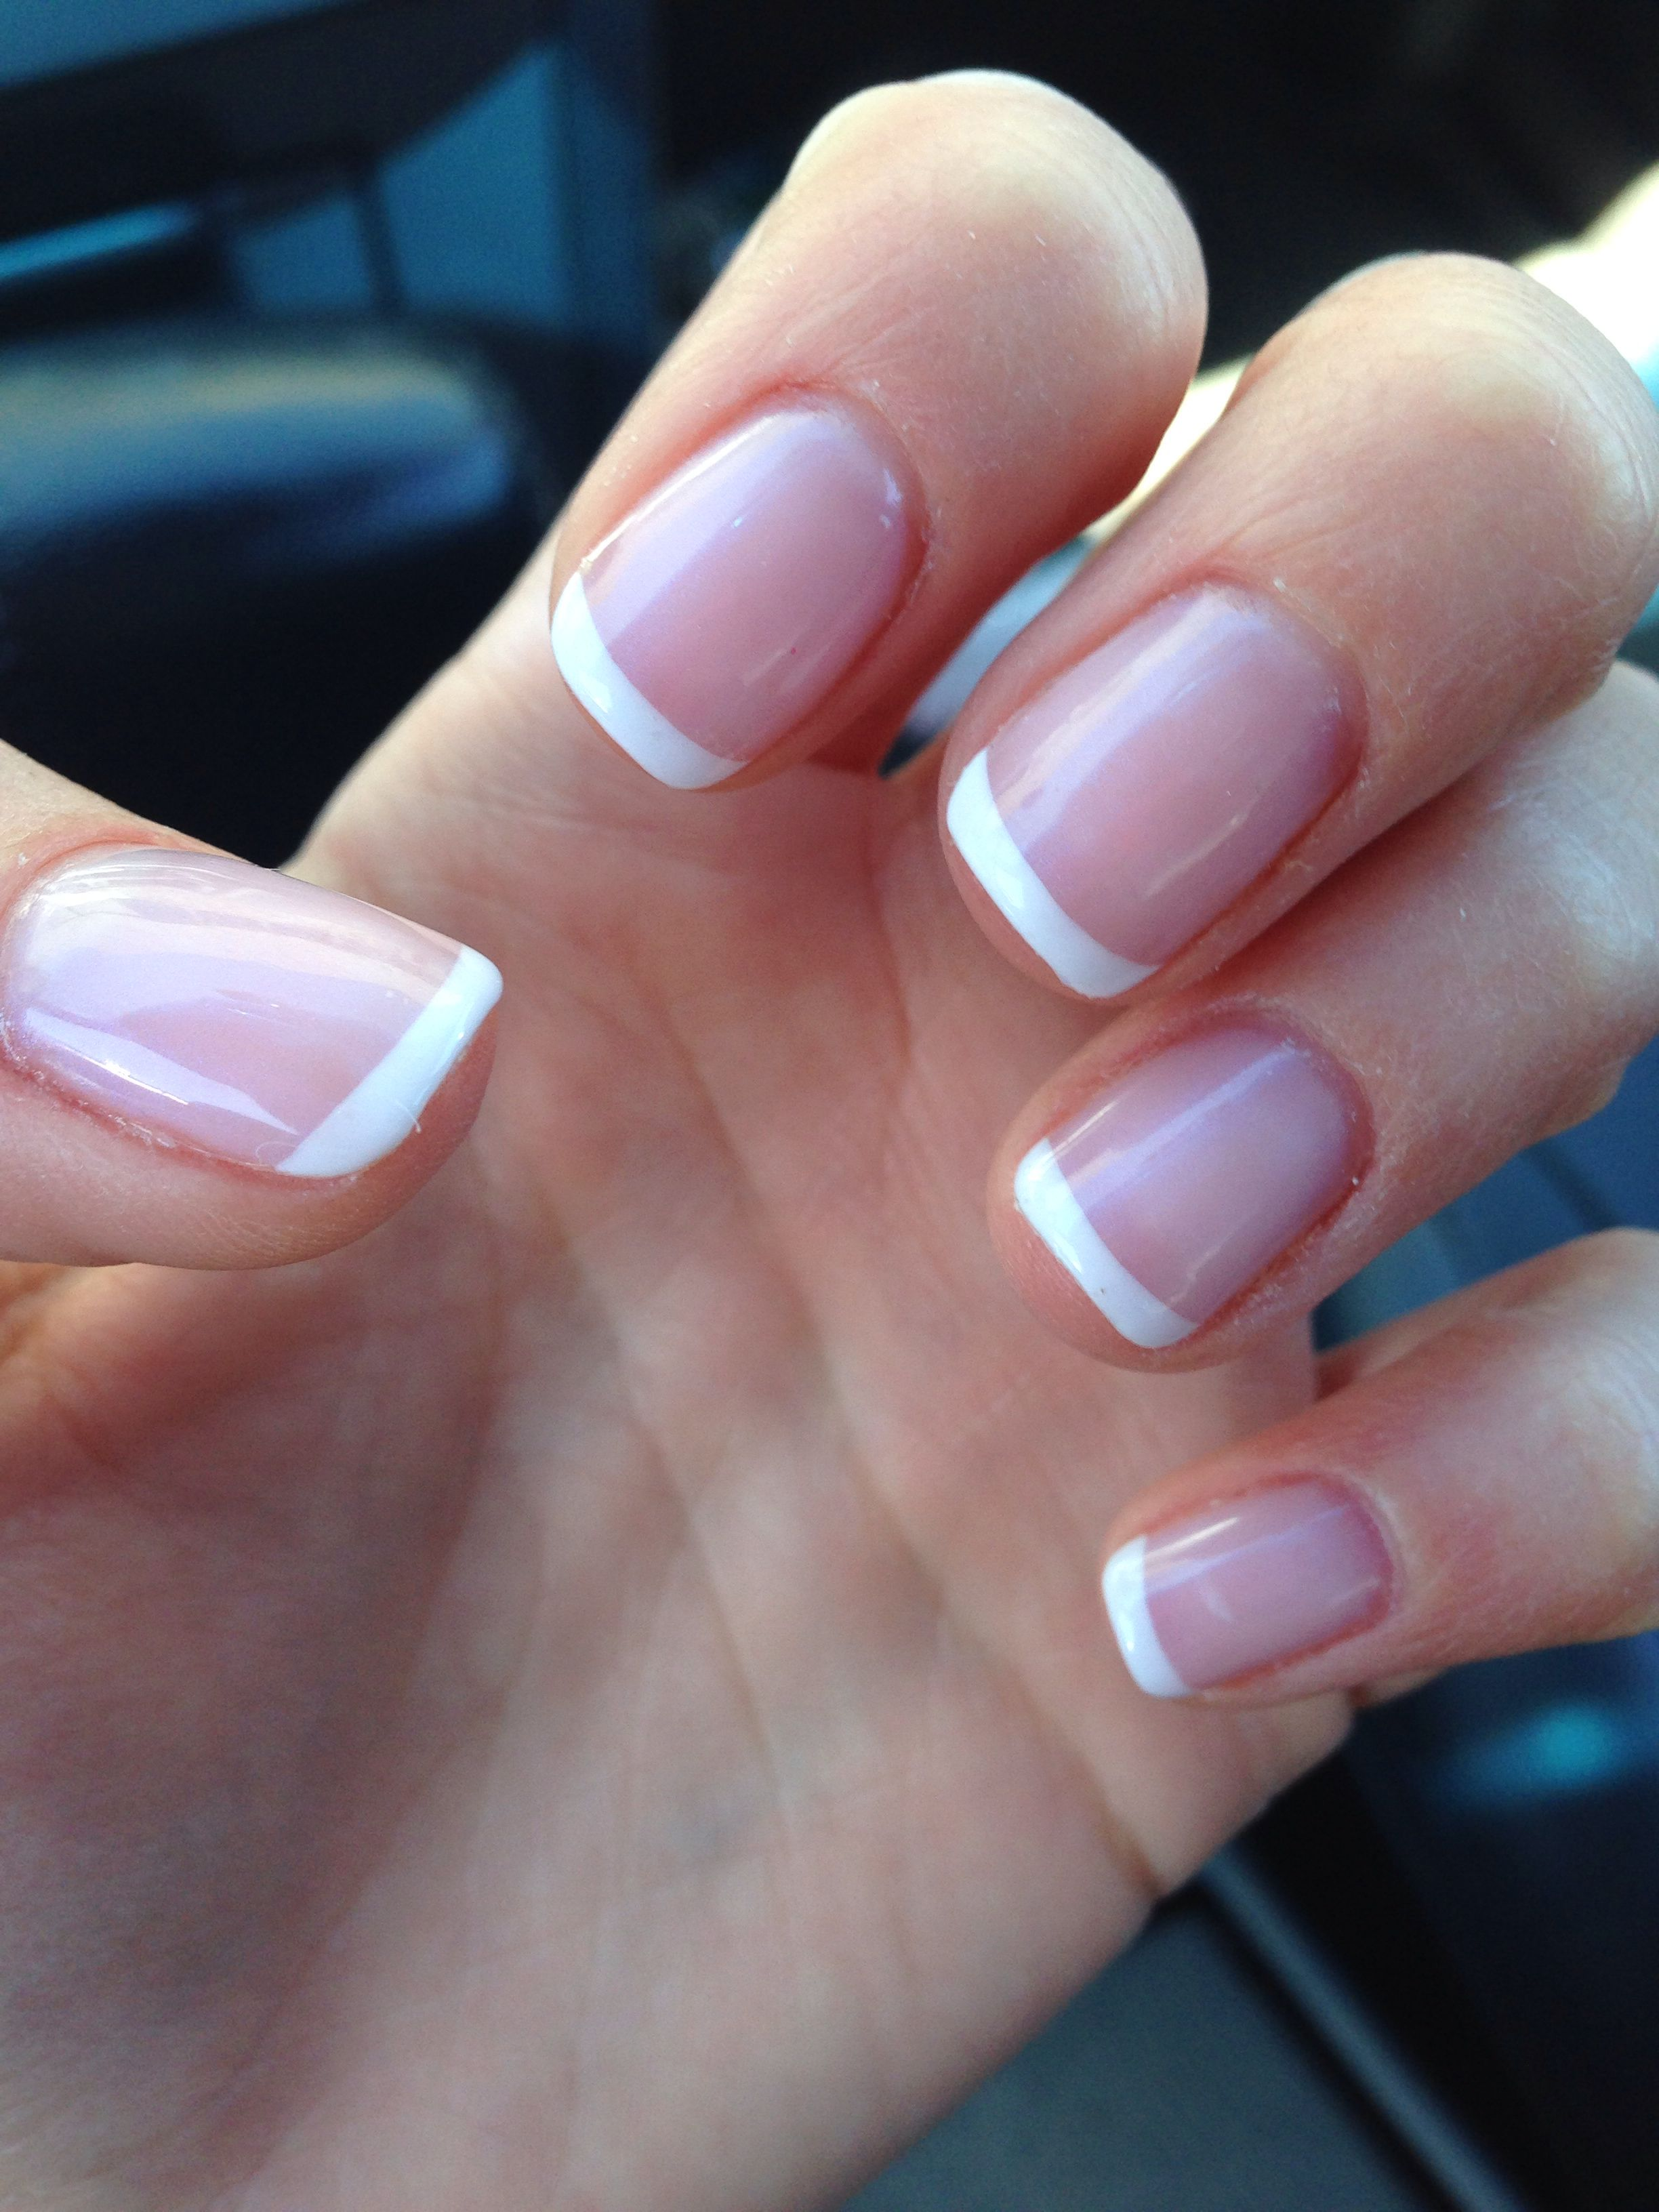 gel french manicure nail ideas pinterest gel french. Black Bedroom Furniture Sets. Home Design Ideas